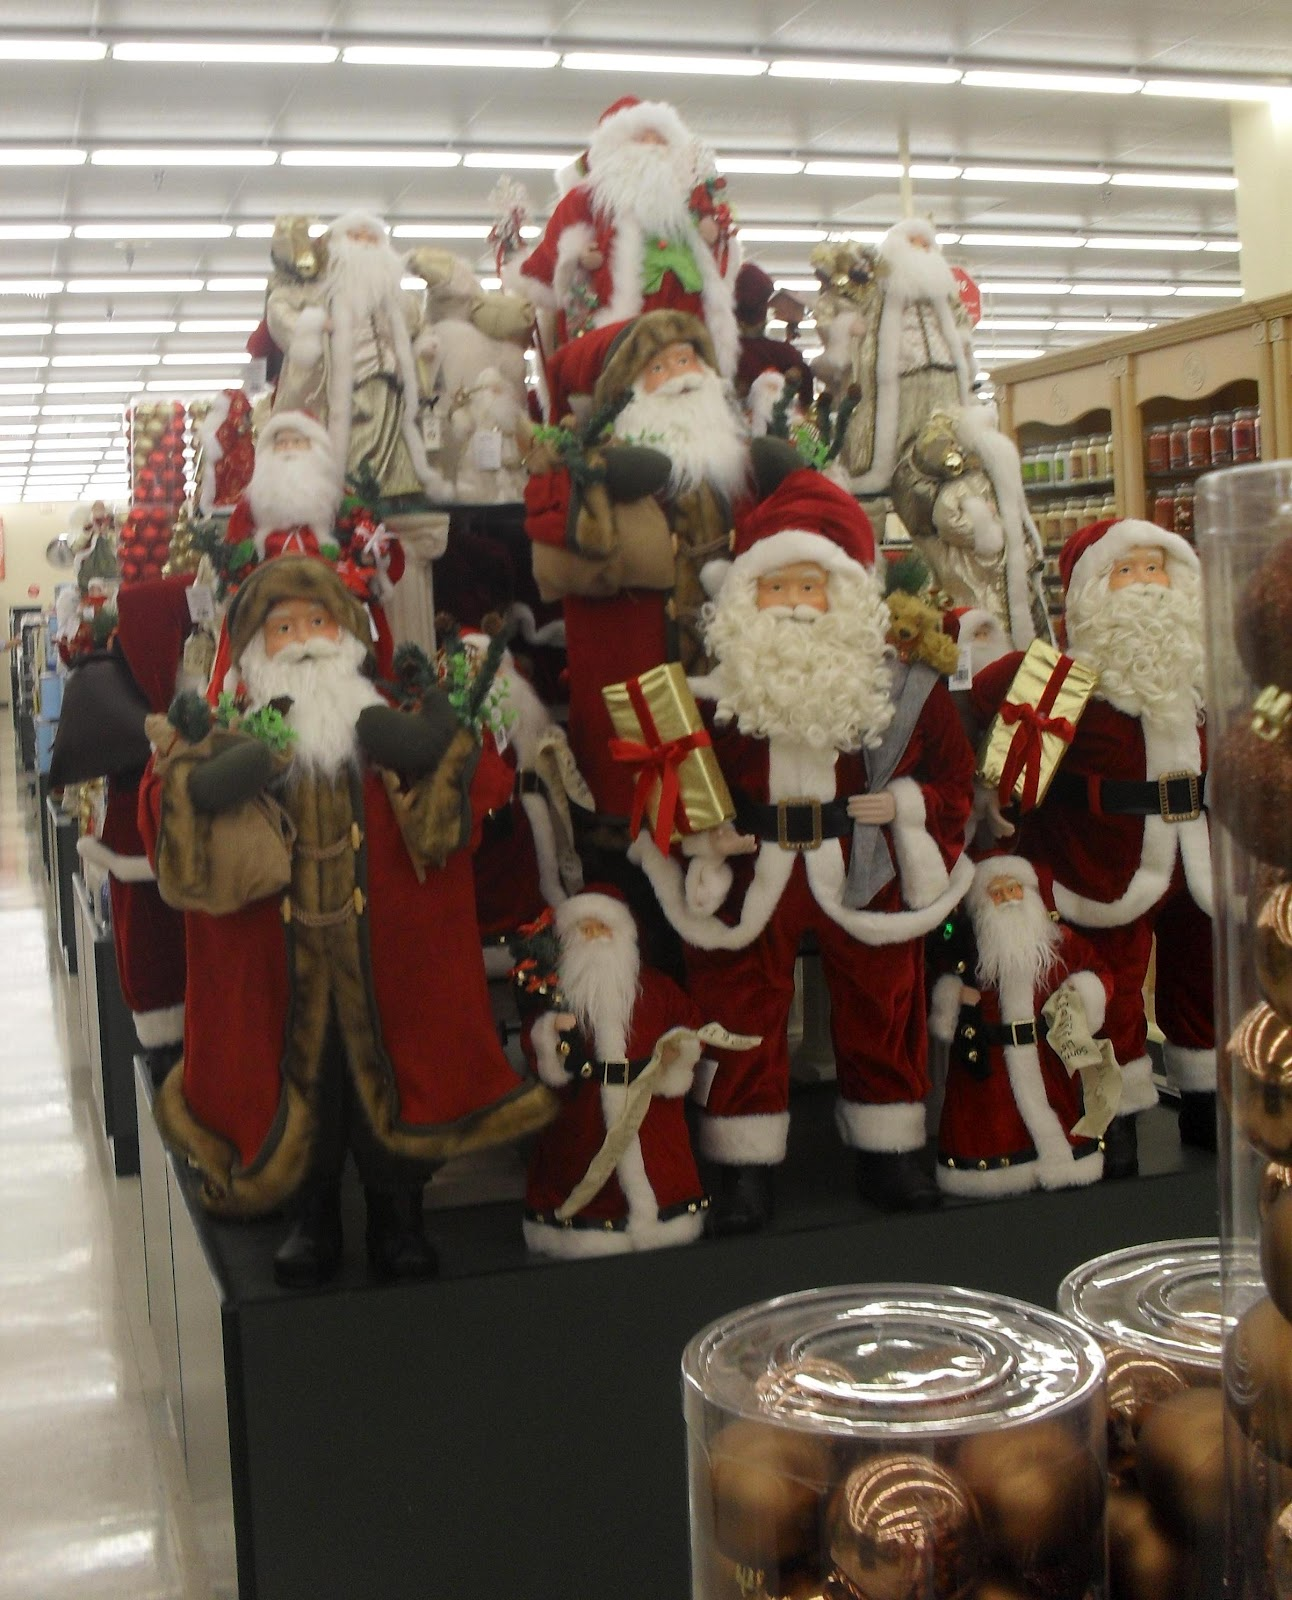 At home with Elaine: Monday's trip to Hobby Lobby